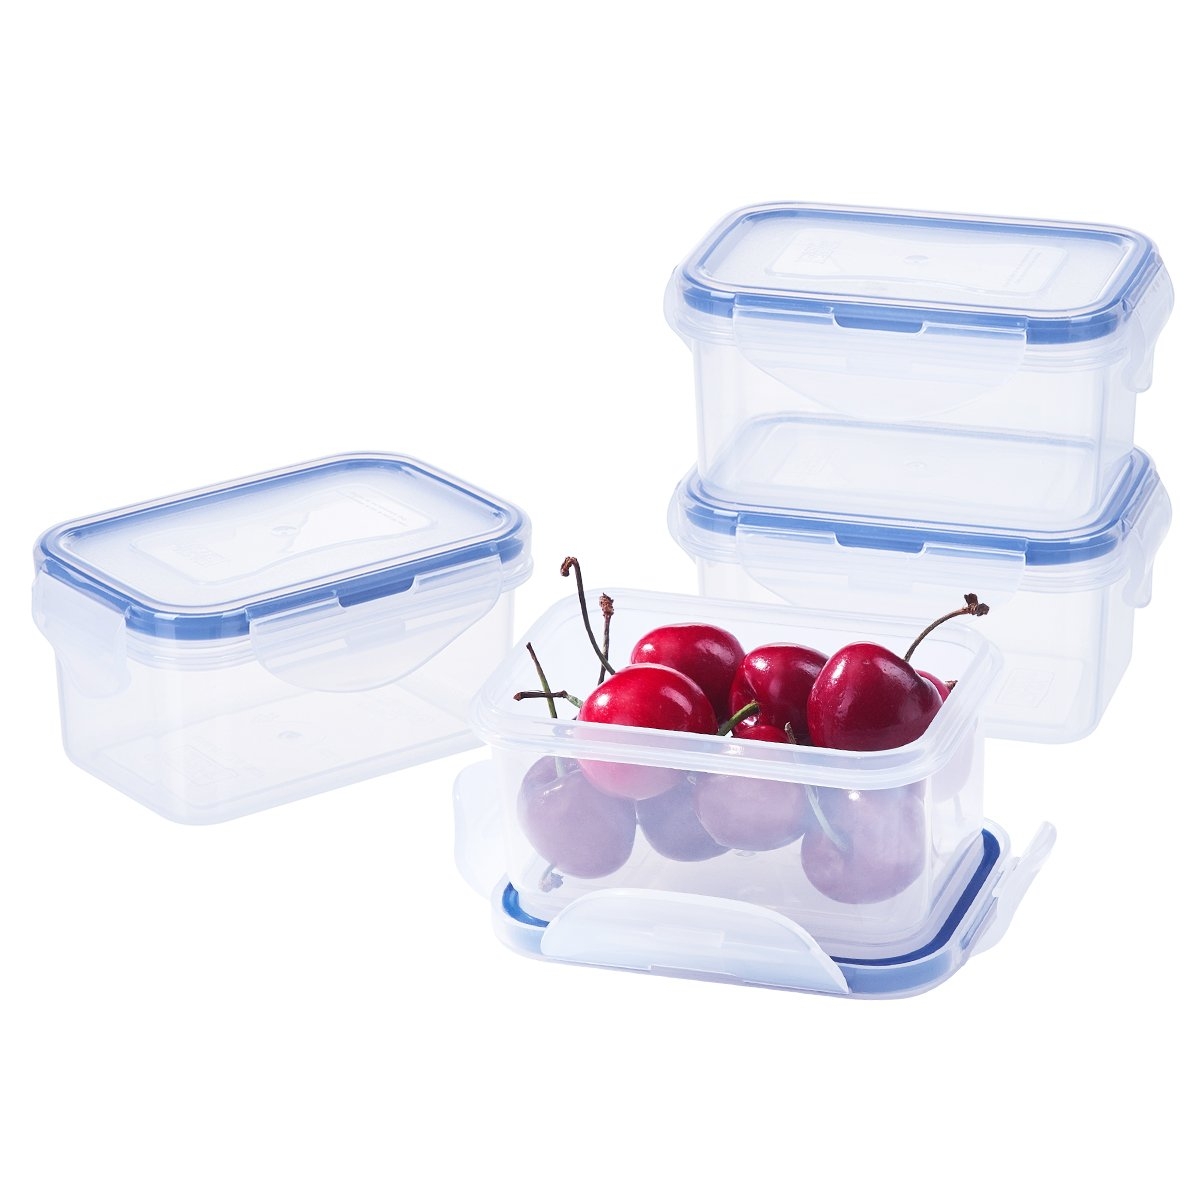 [4Pack] 6.1oz Baby Food Storage BPA-Free Airtight Plastic Containers Set, Rectangular Small Bento Lunch Boxes, Microwave, Freezer and Dishwasher Safe